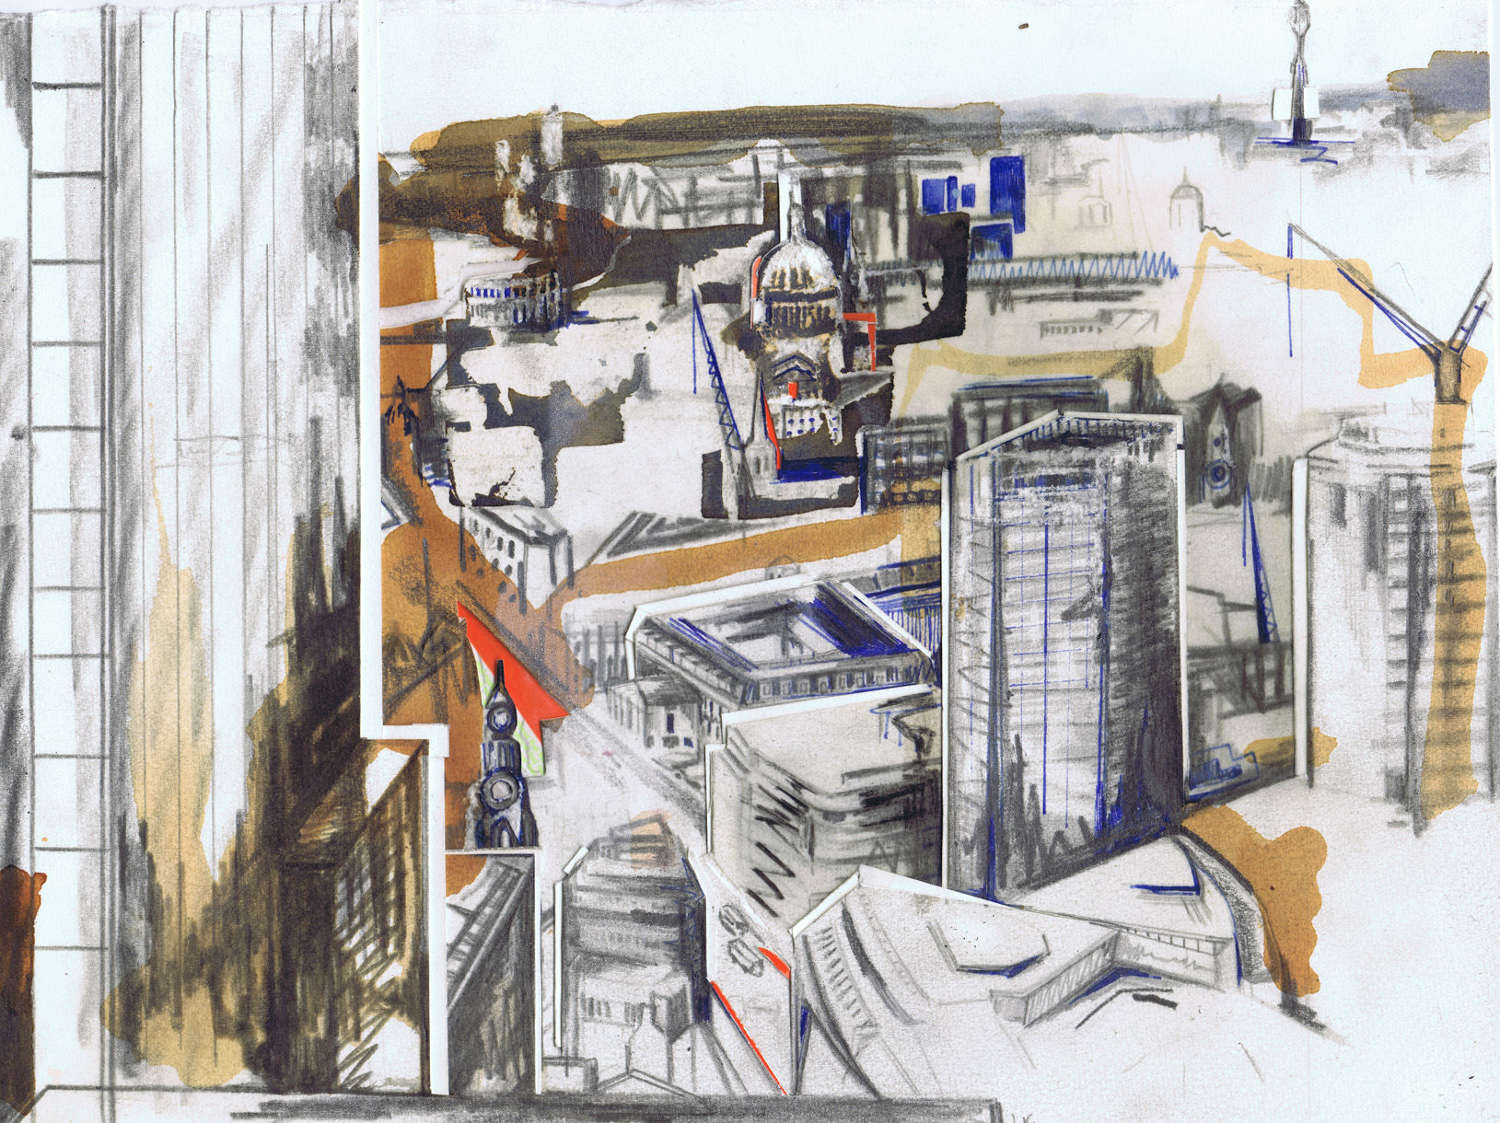 From the Gherkin, Sketch